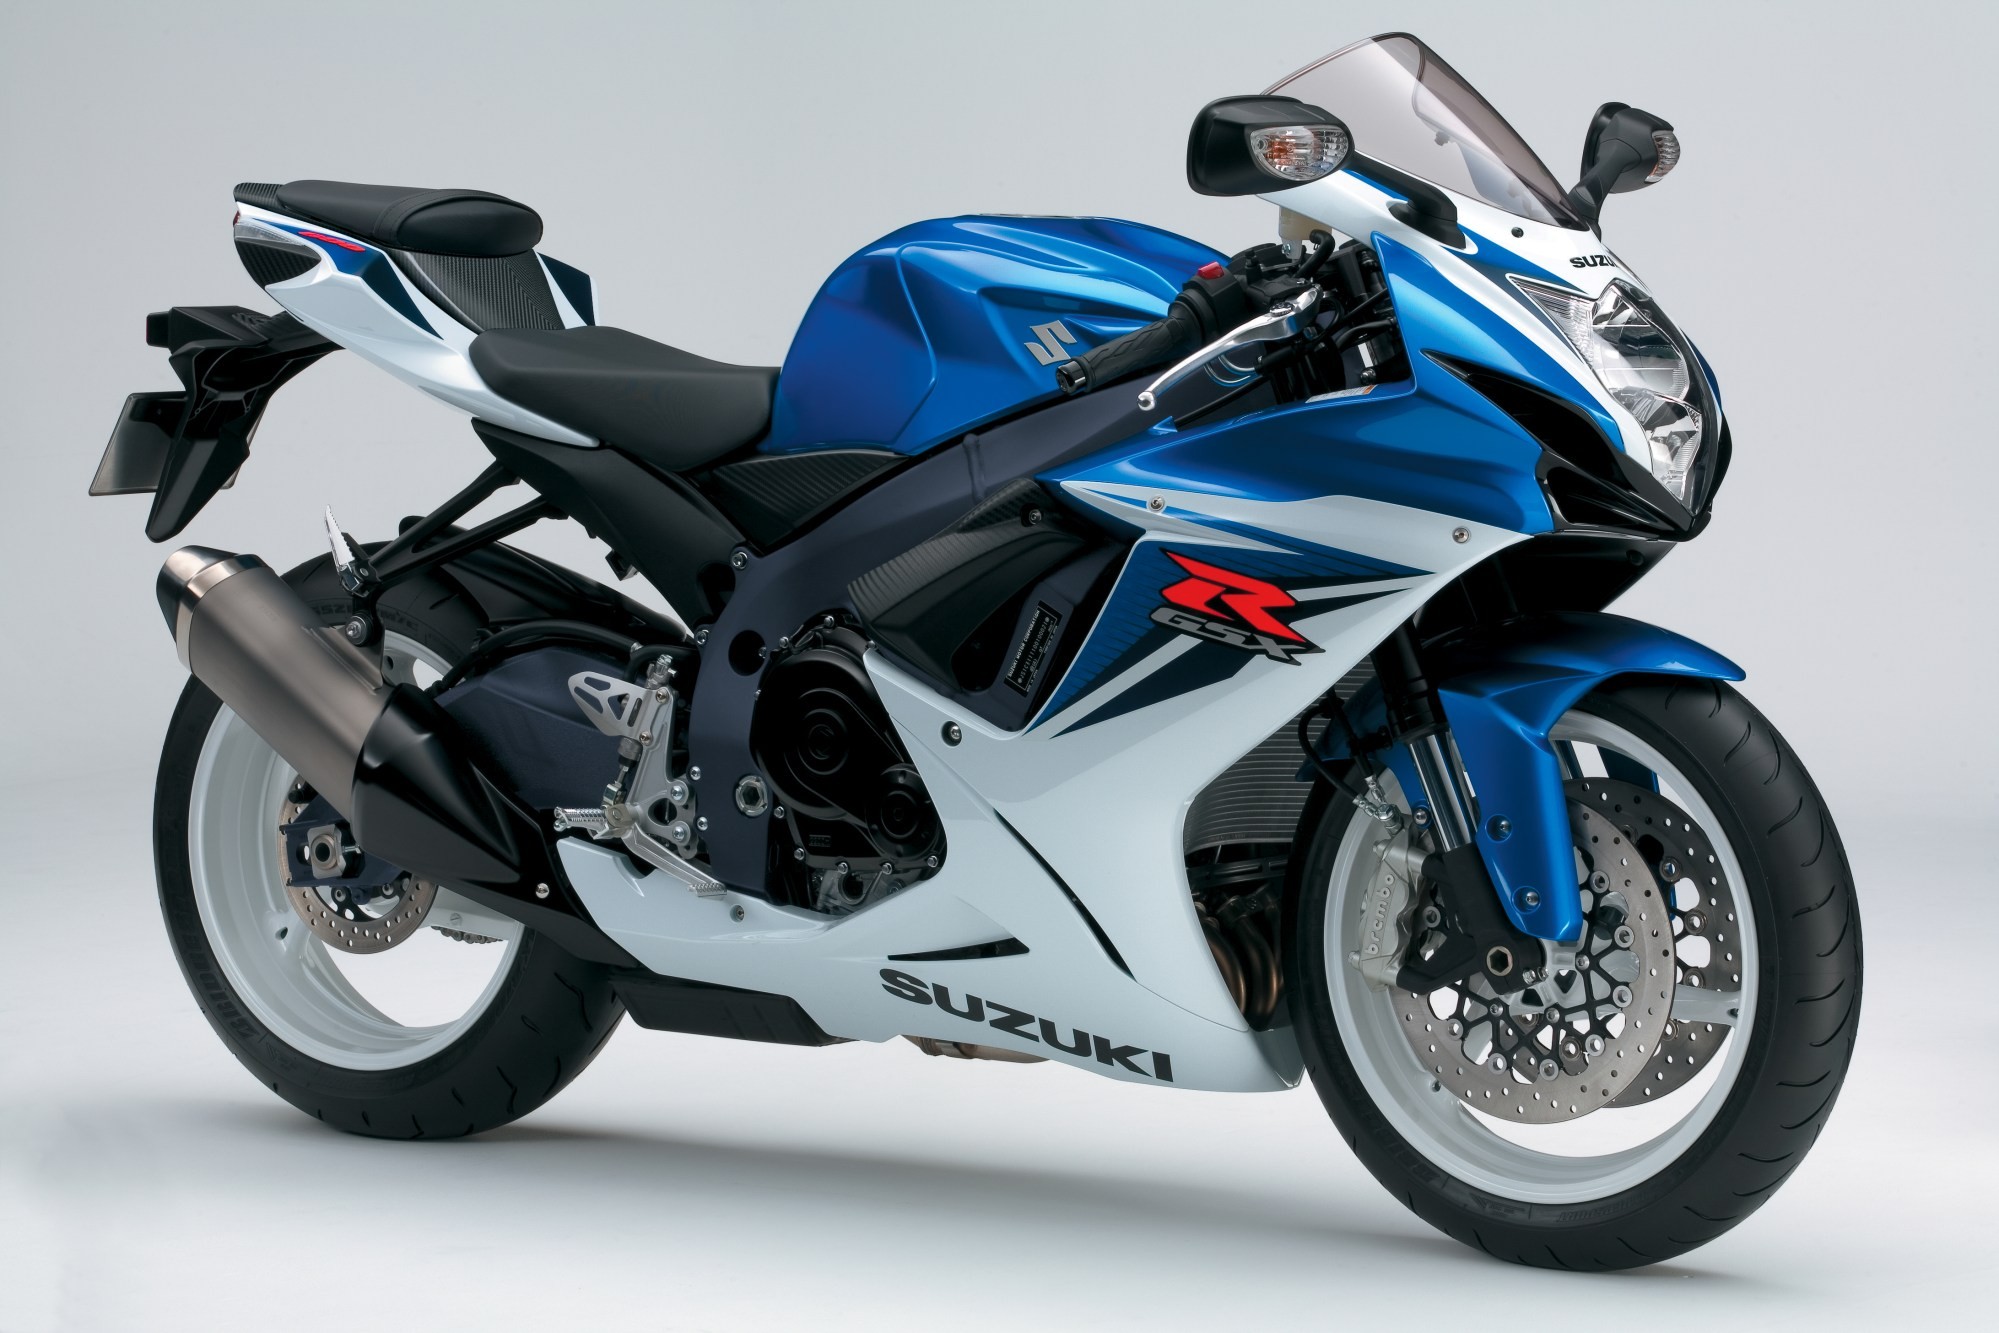 hight resolution of  suzuki gsx 650 f 2012 pics 47780